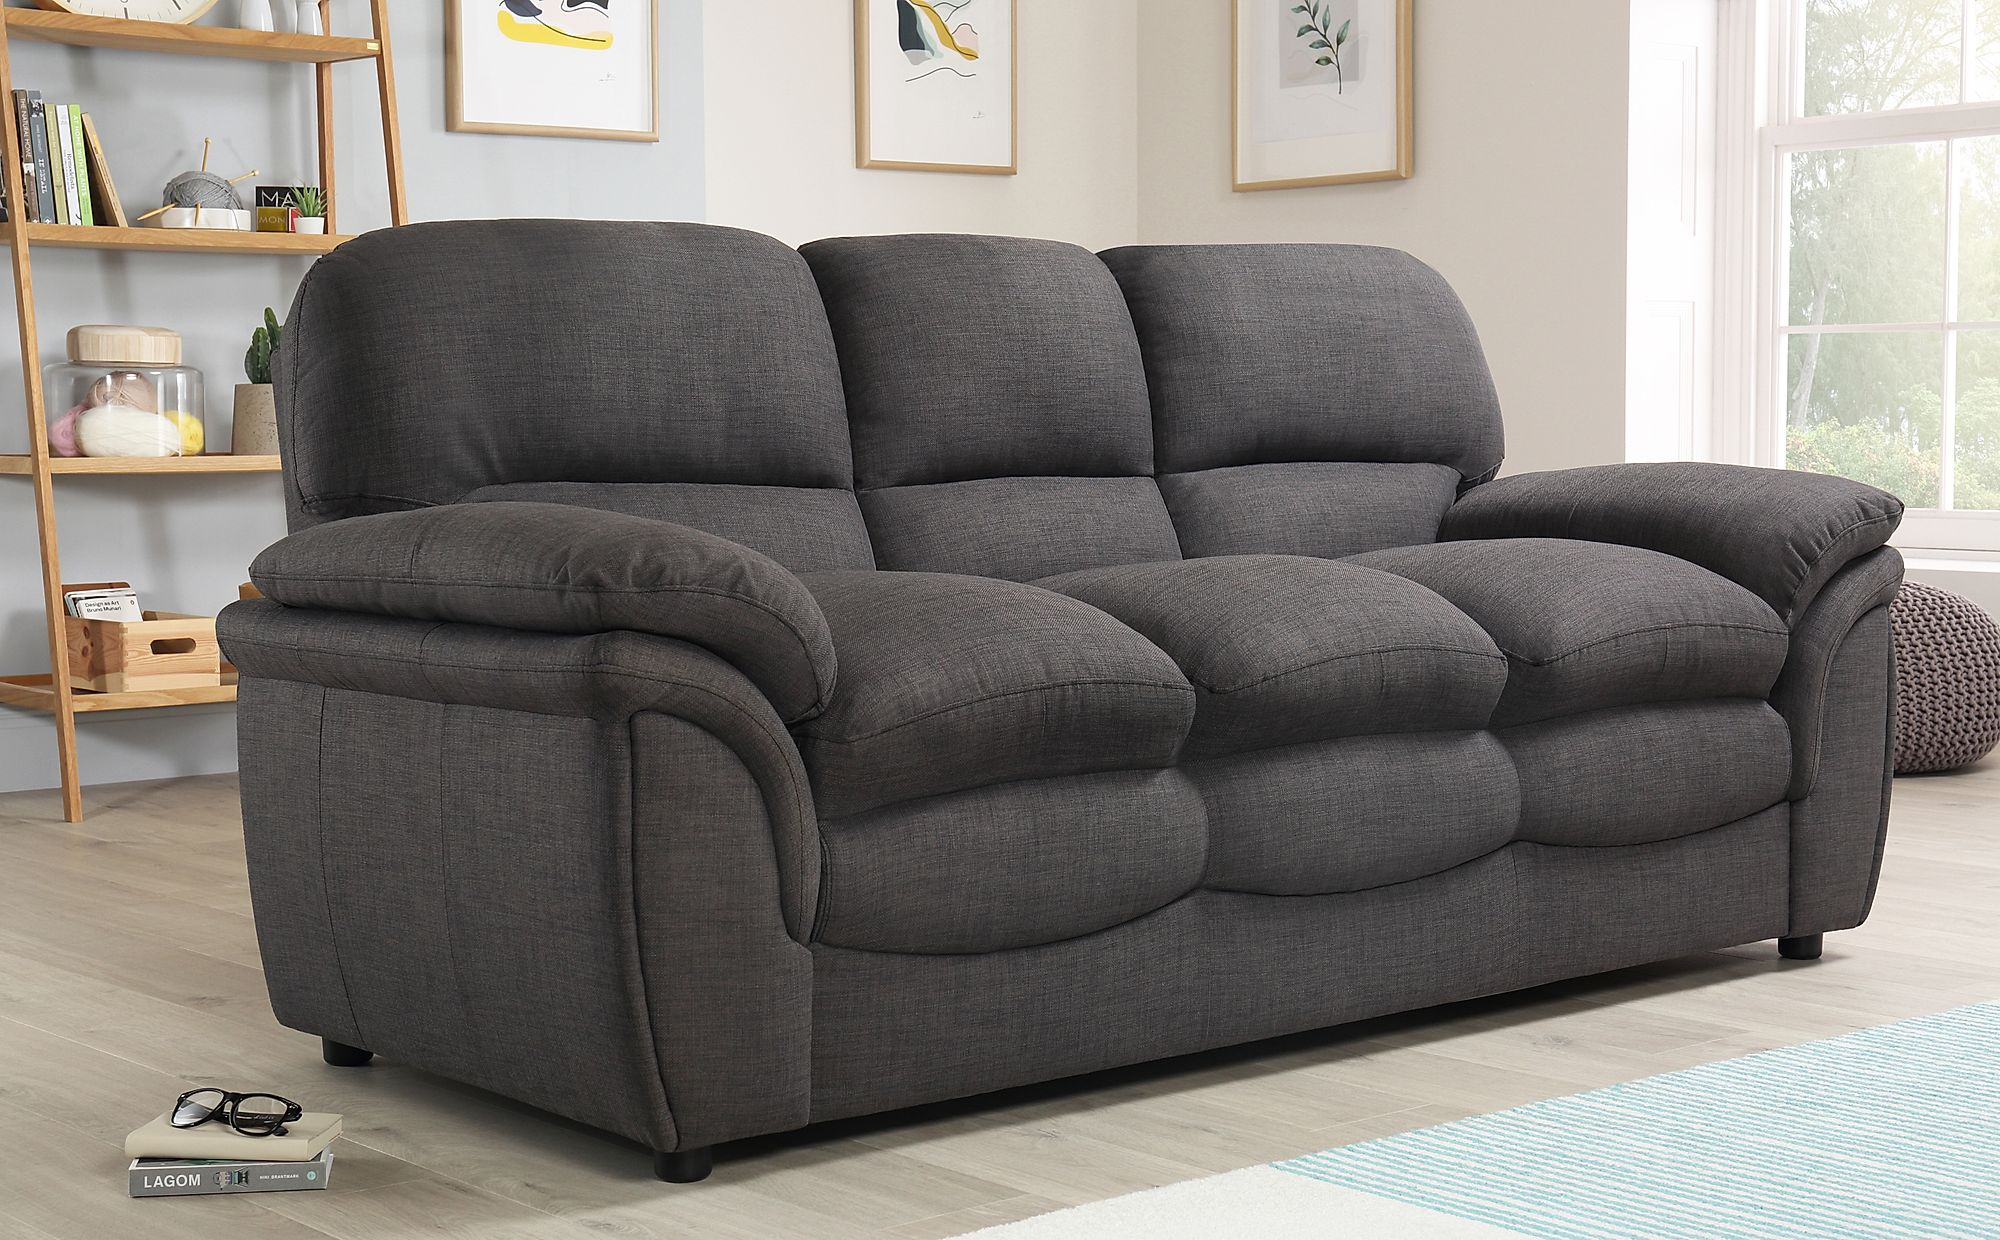 Rochester Fabric 3 Seater Sofa Slate Grey Only